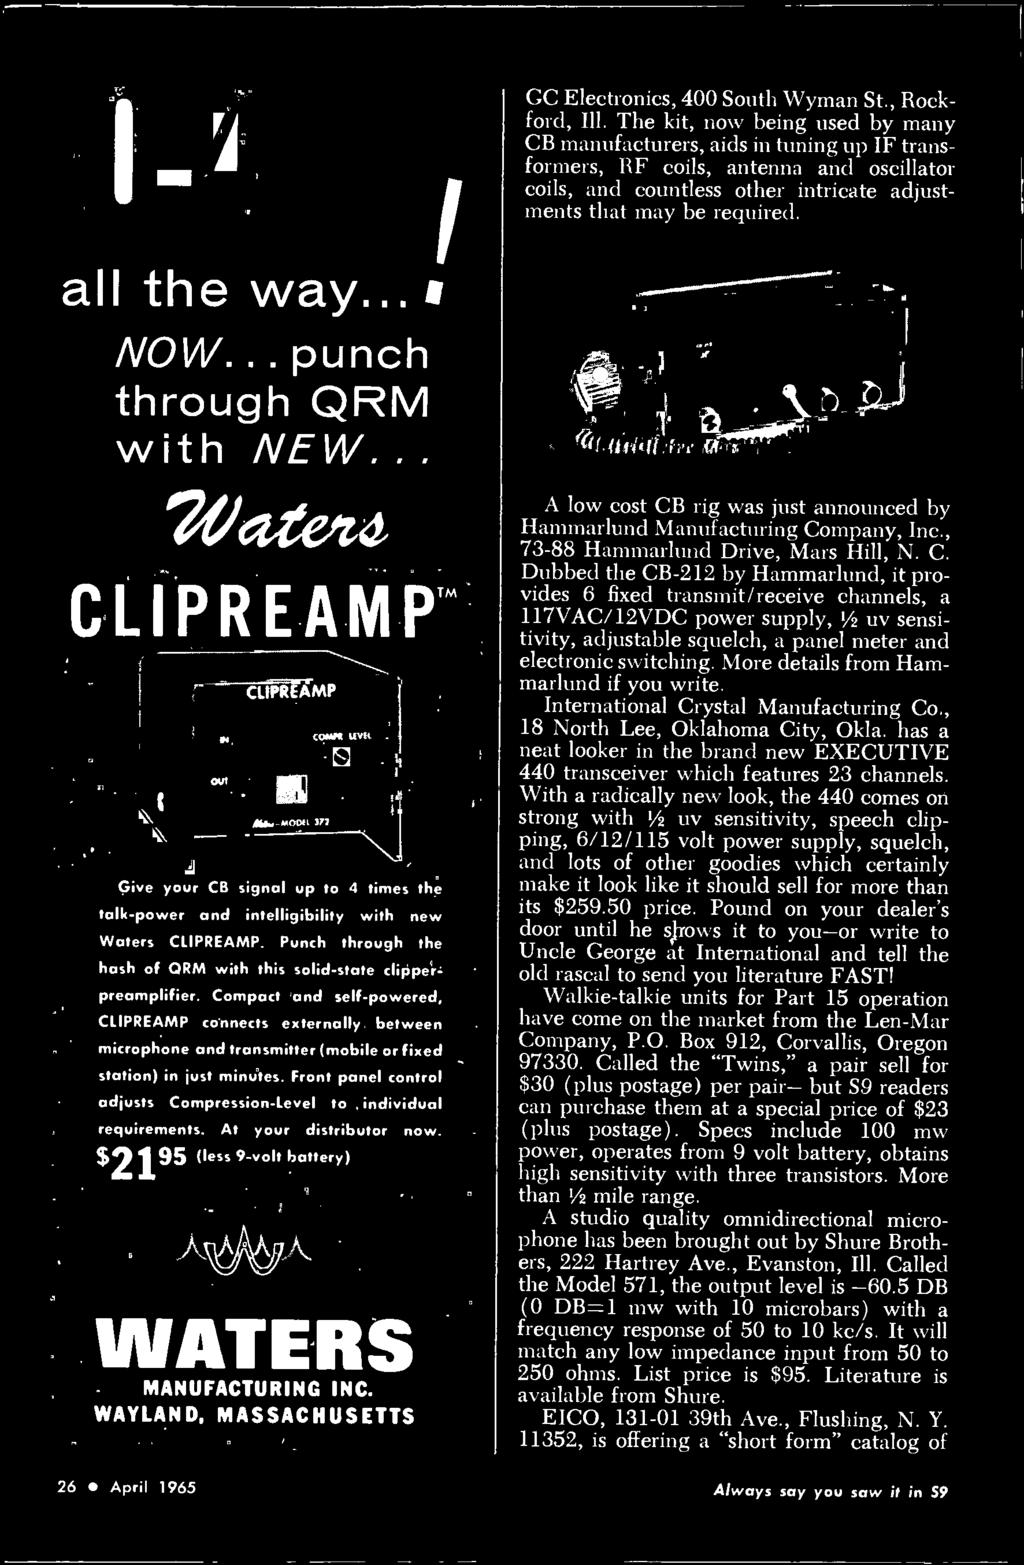 c7f6db4b156 he OFFICIAL CB RADIO MAGAZIN the citizens band journal FLASH! FCC ...